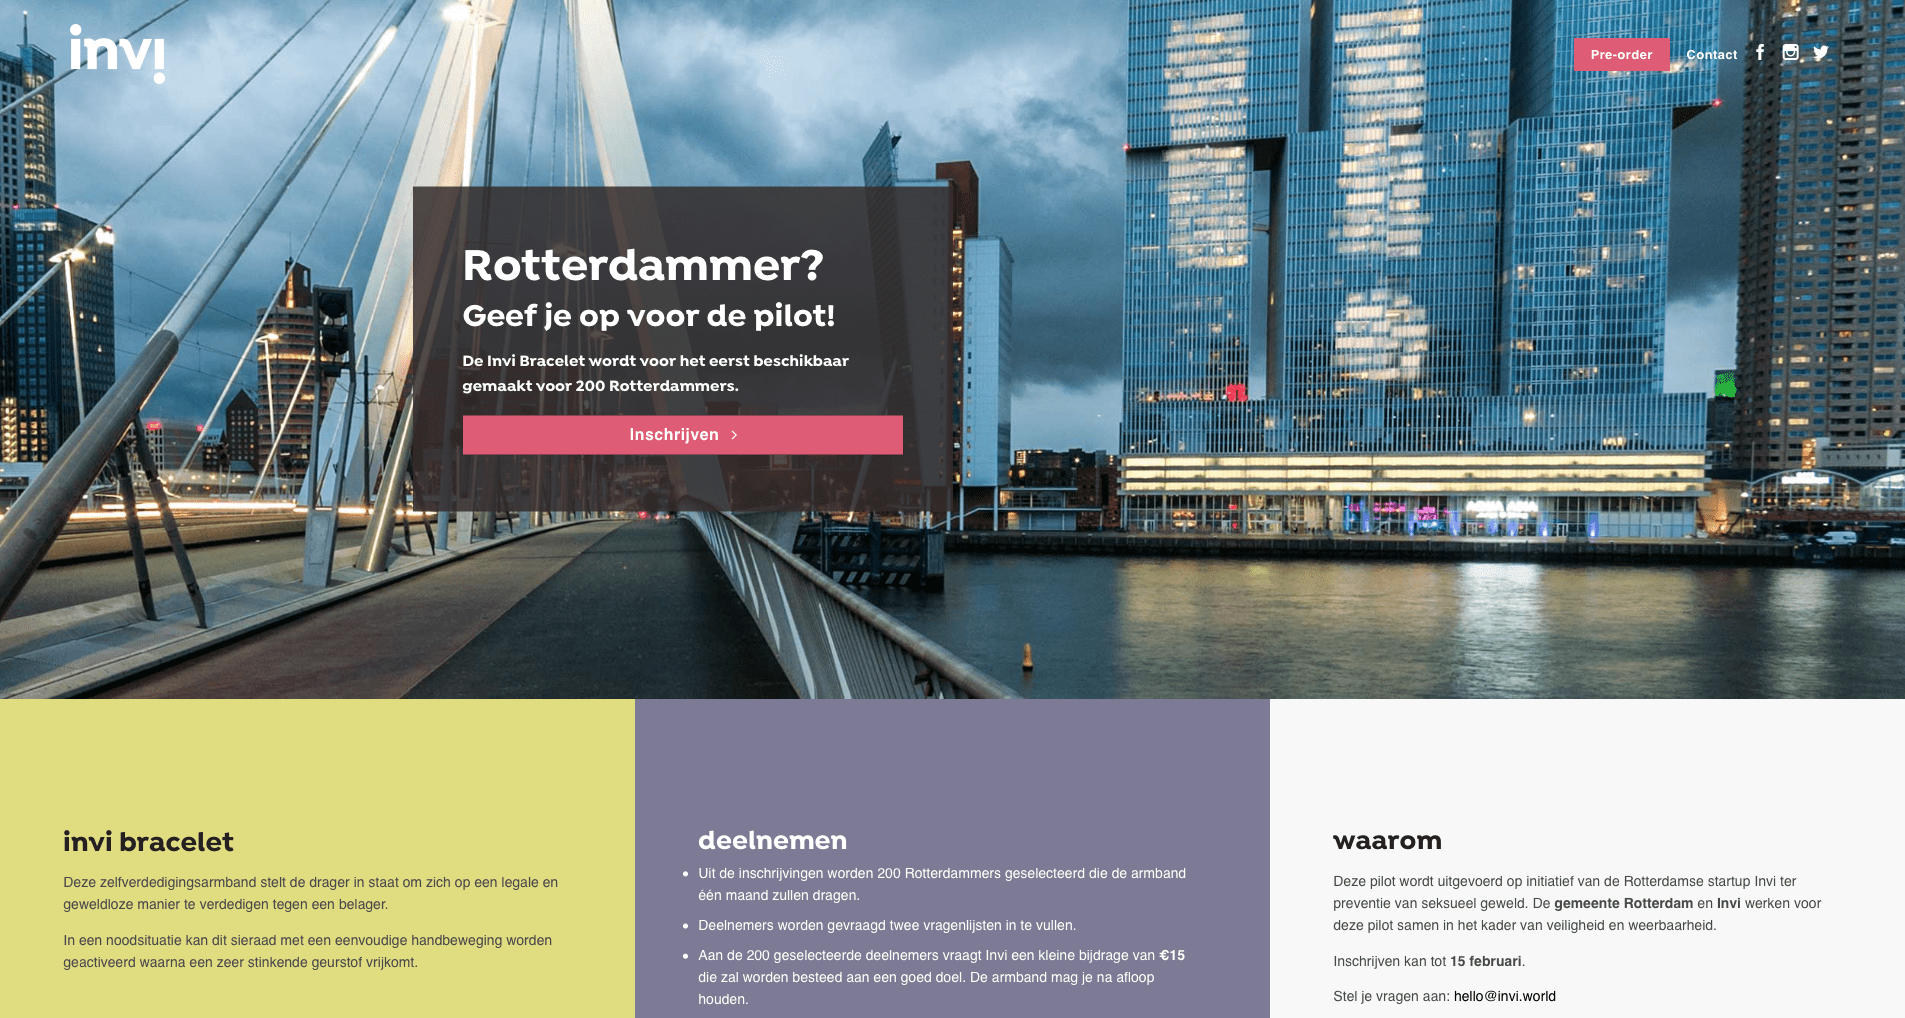 Website Invi Bracelet http://invi.world/rotterdam/